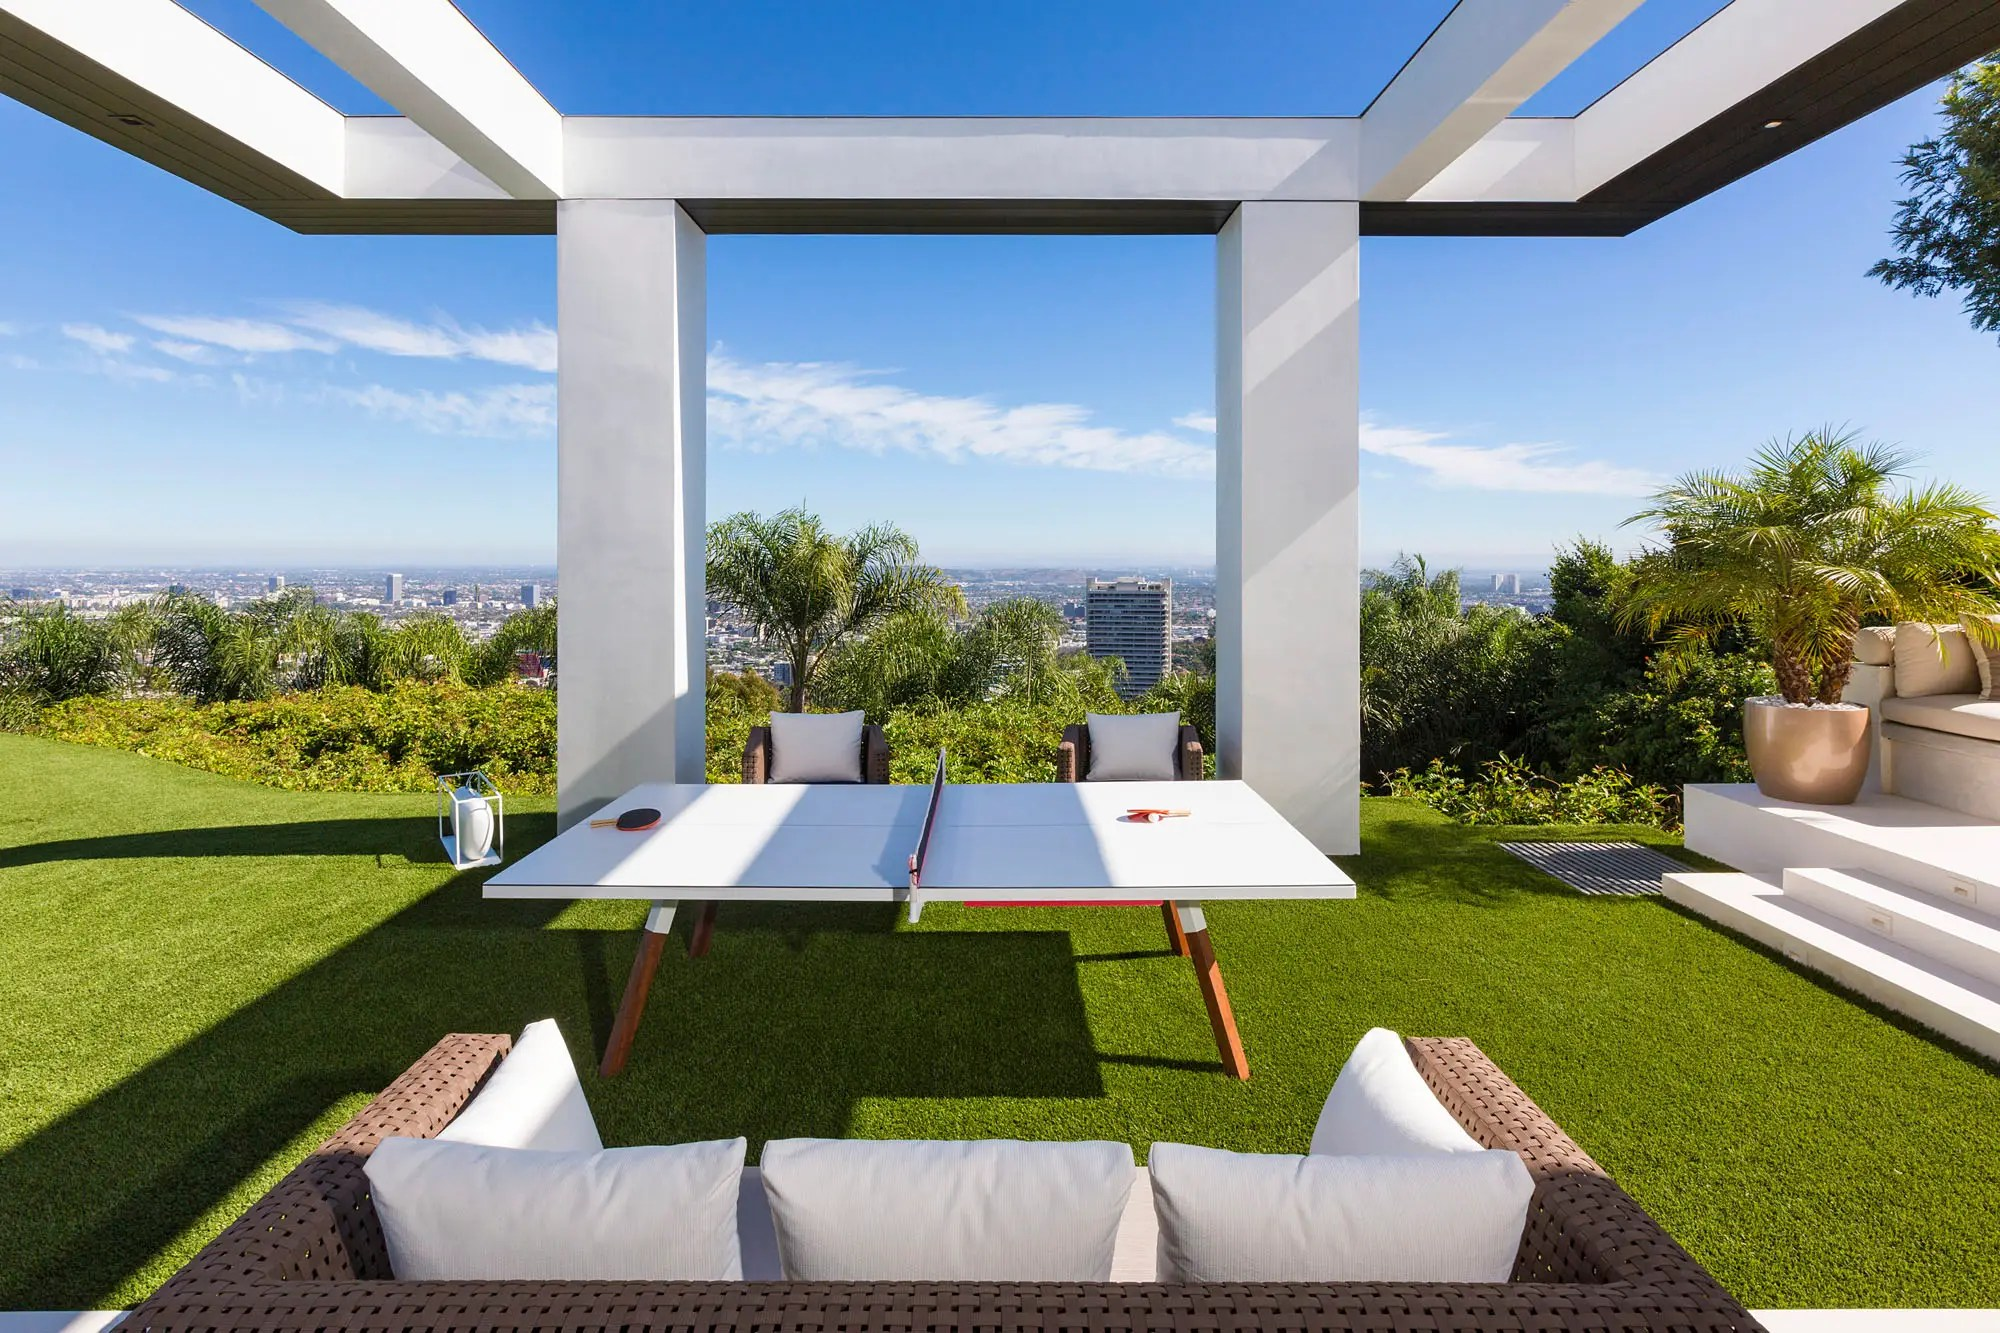 With couches and a ping-pong table, this would be a wonderful area to relax.